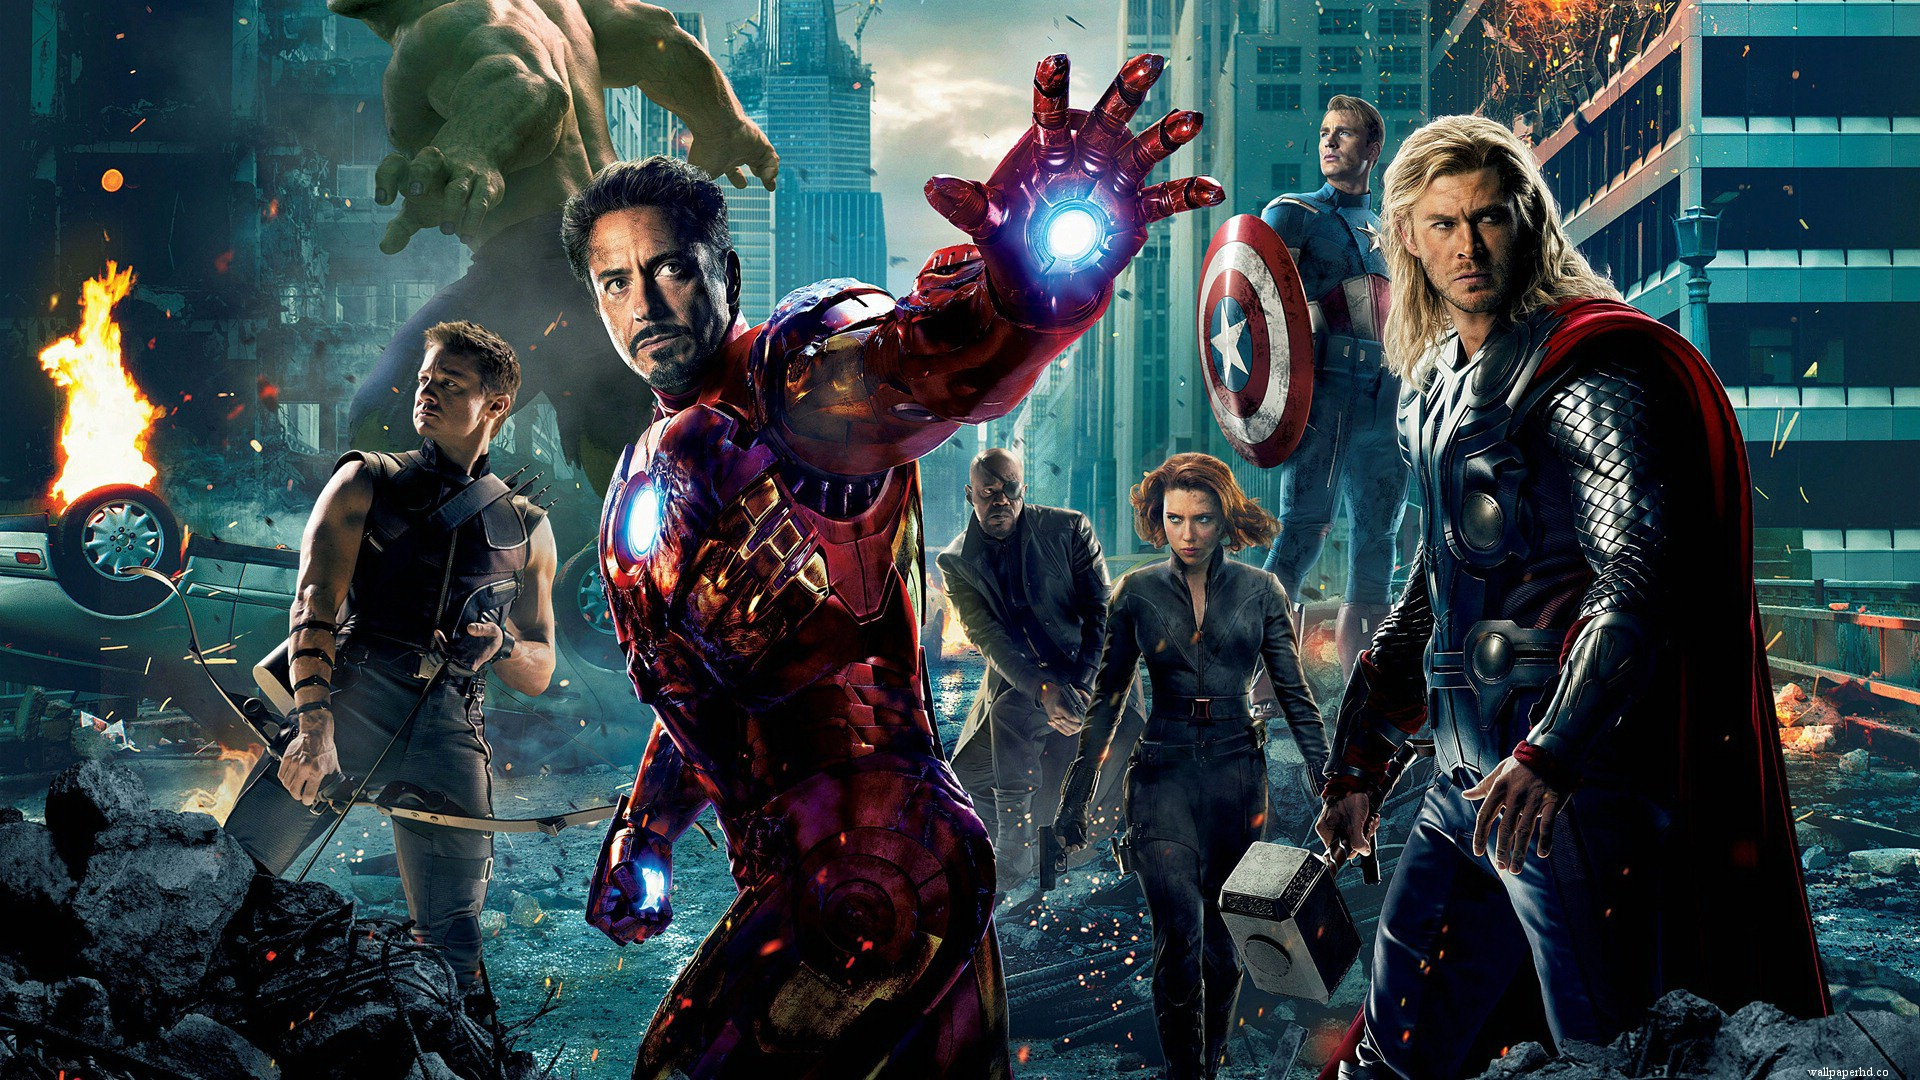 The Avengers Wallpapers HD Movie Wallpapers The Avengers Wallpapers 1920x1080